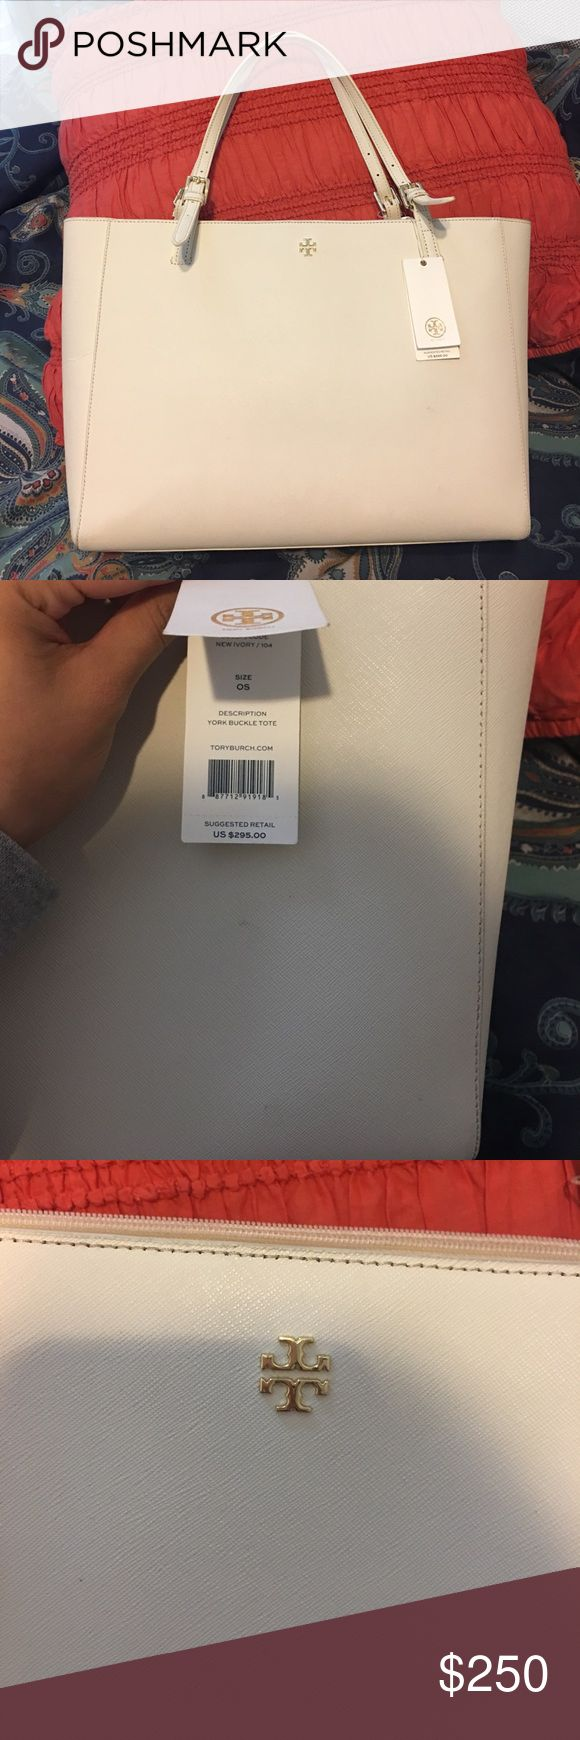 TORY BURCH NWT! Selling a large tote, ivory color. Great condition. Still has the tag, this purse is perfect for laptop and tablet carriers because it has a compartment for that. 4 compartments and zipper inside. Tory Burch Bags Totes